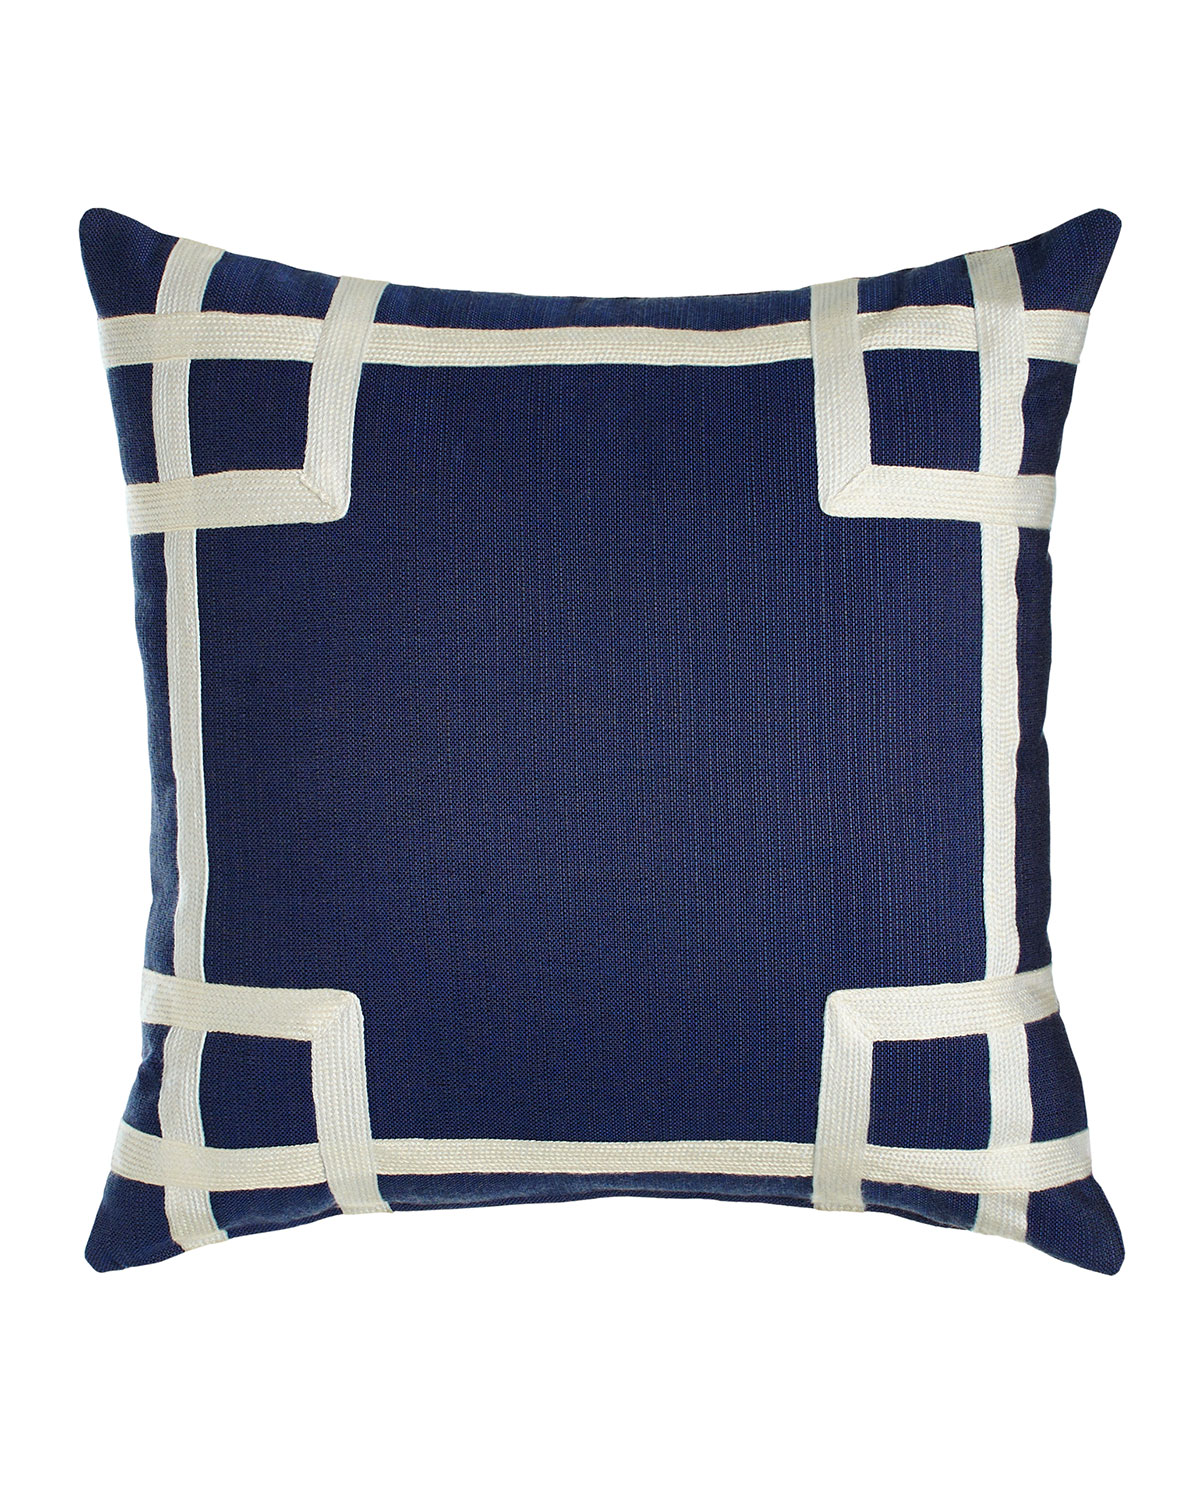 Lacefield Designs Navy Outdoor Pillows Matching Items Neiman Marcus